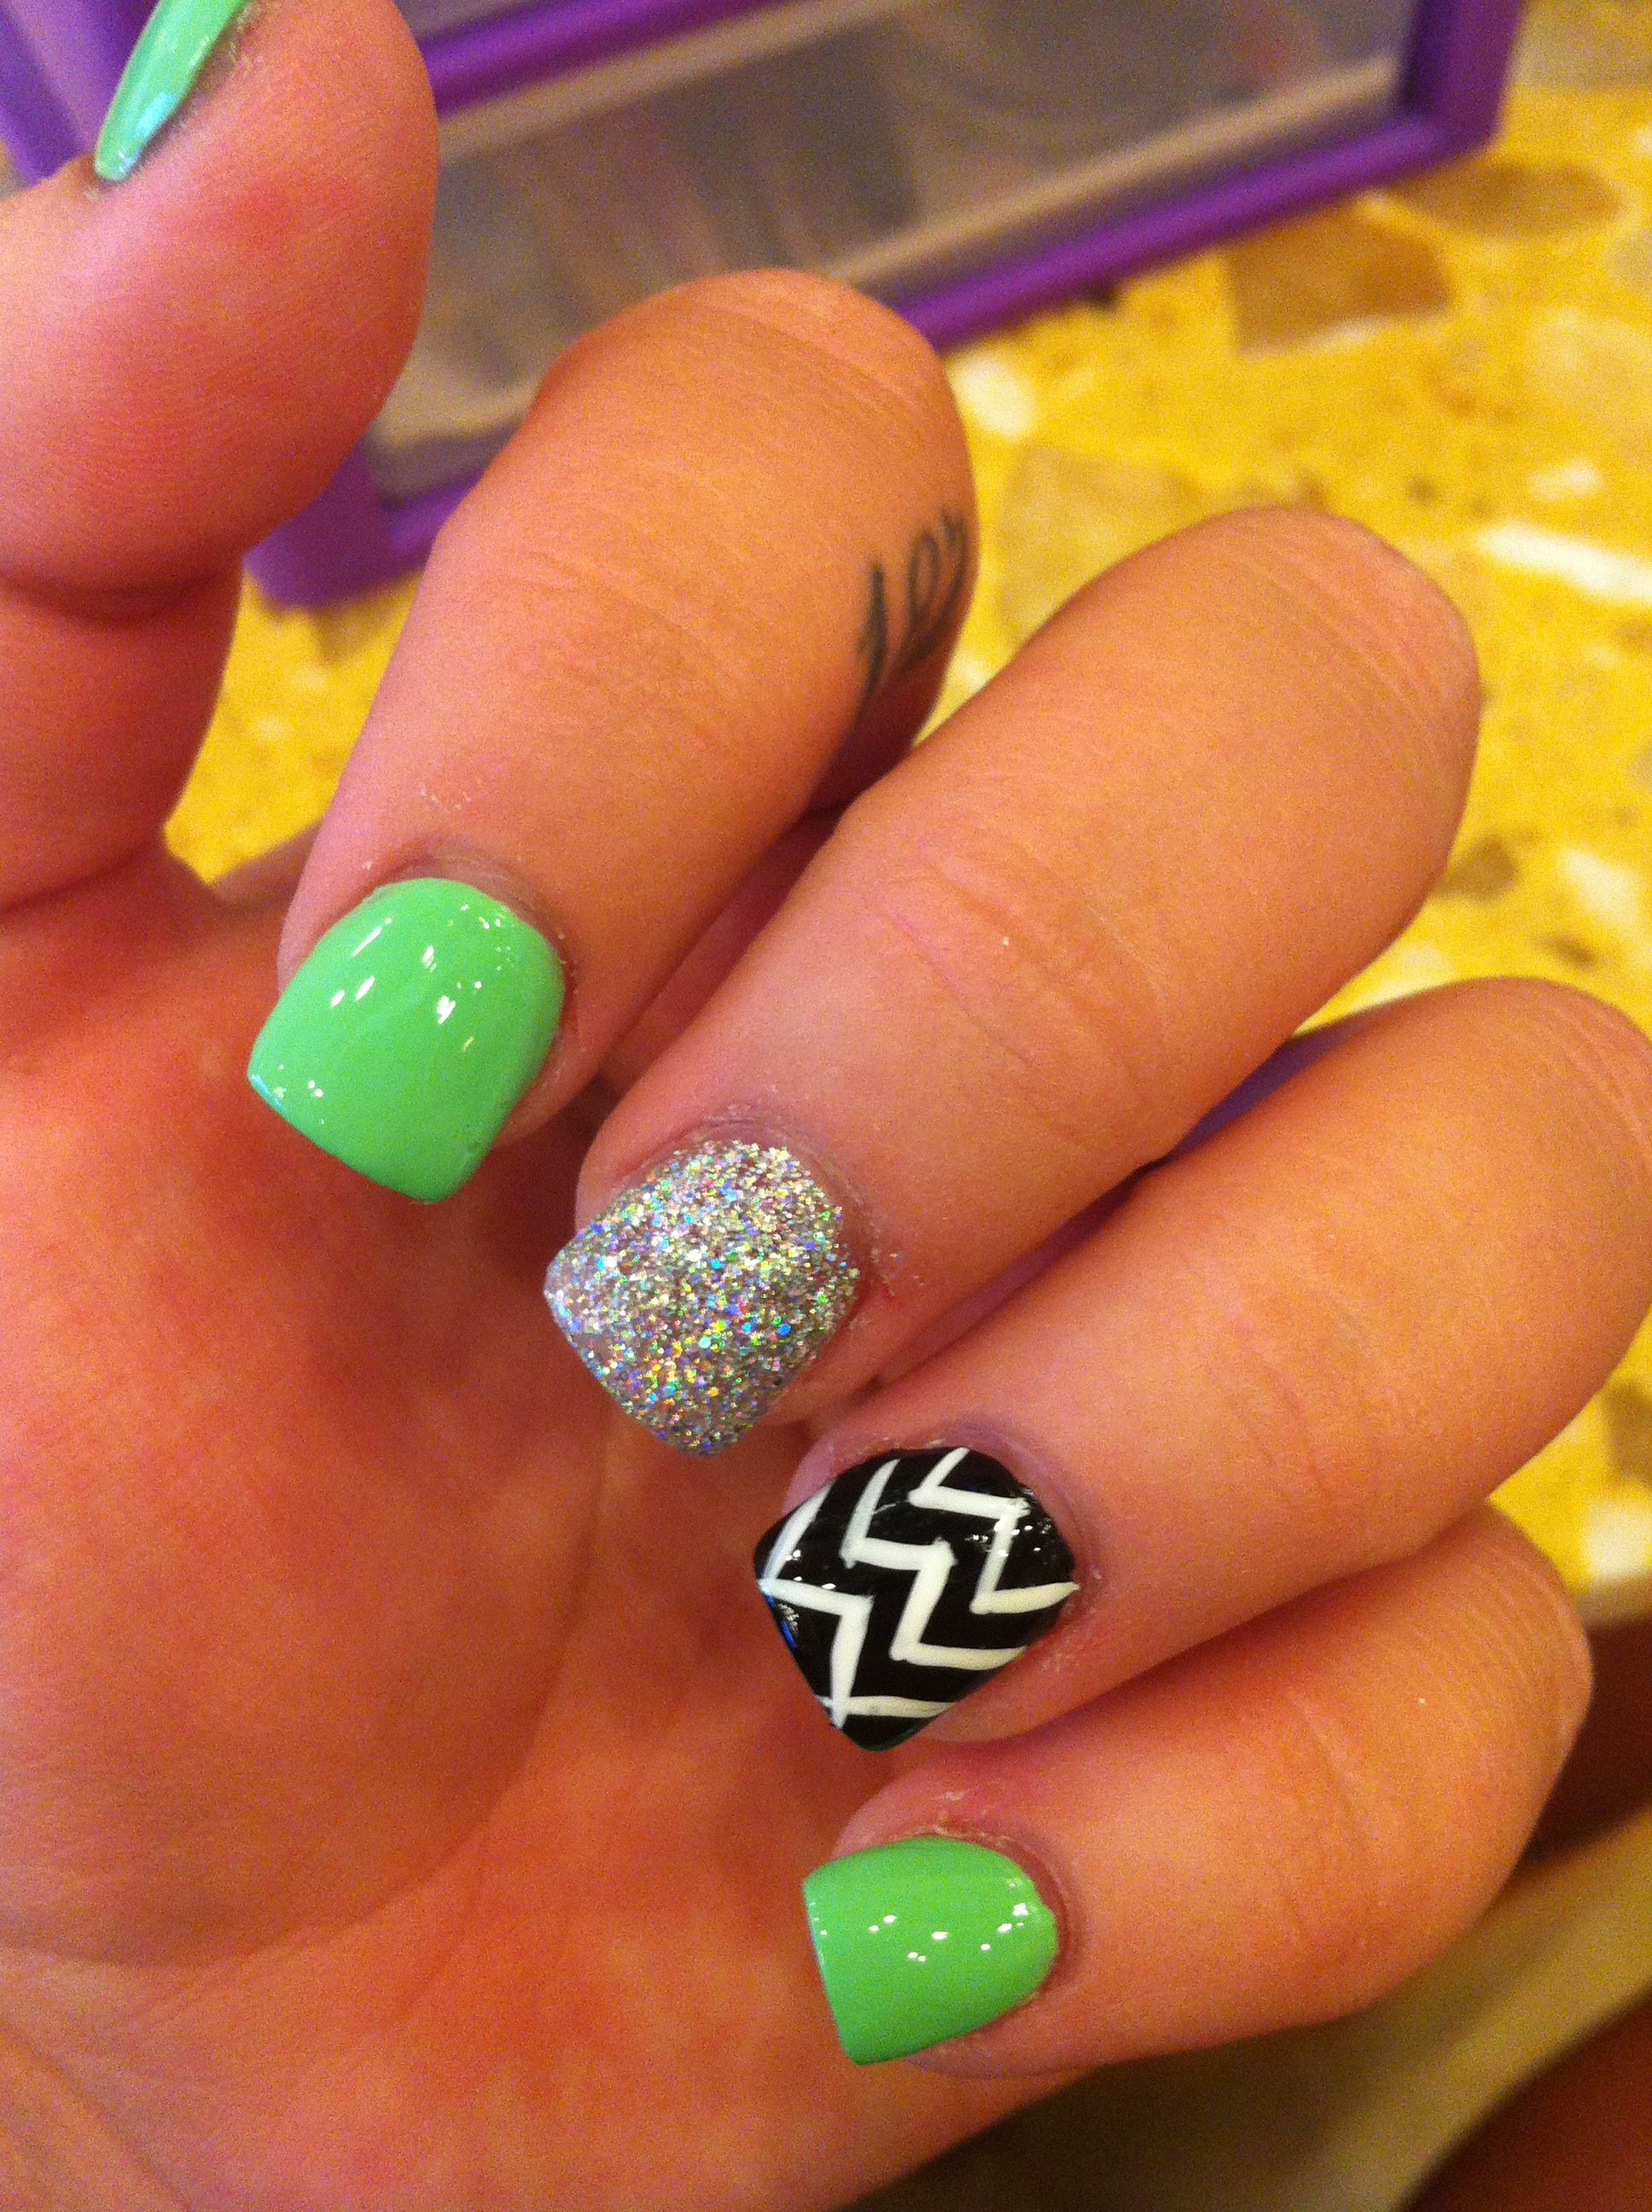 My Extreme Nails Guide Halloween Nails For Girls Let The Halloween Inspiration Begin Halloween Nails Www Loveitsomuch Green Nails Chevron Nails Toe Nails